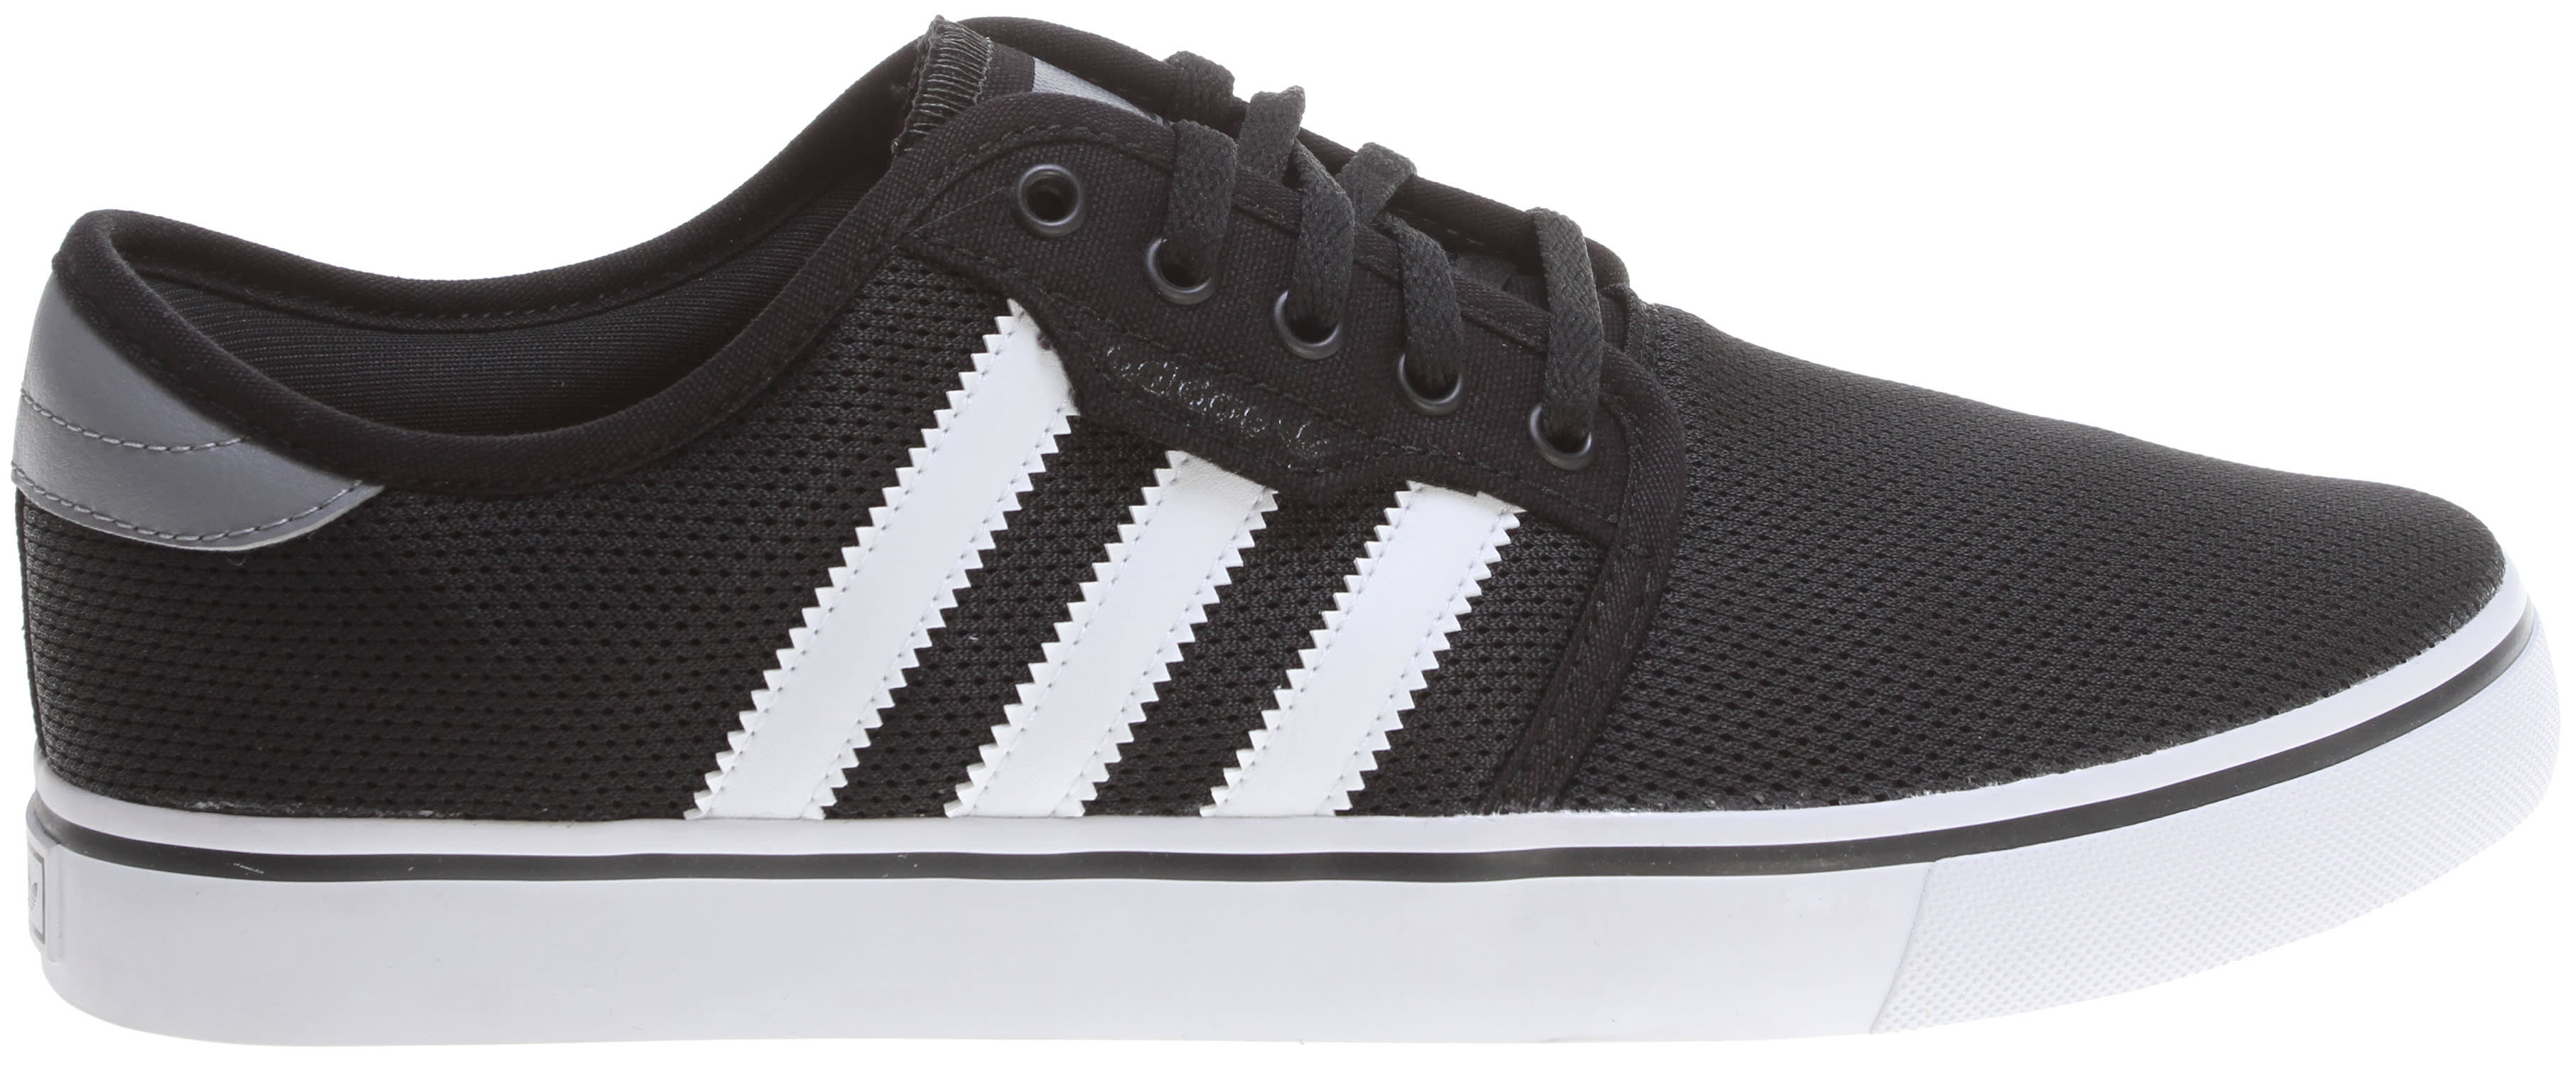 adidas skate shoes men